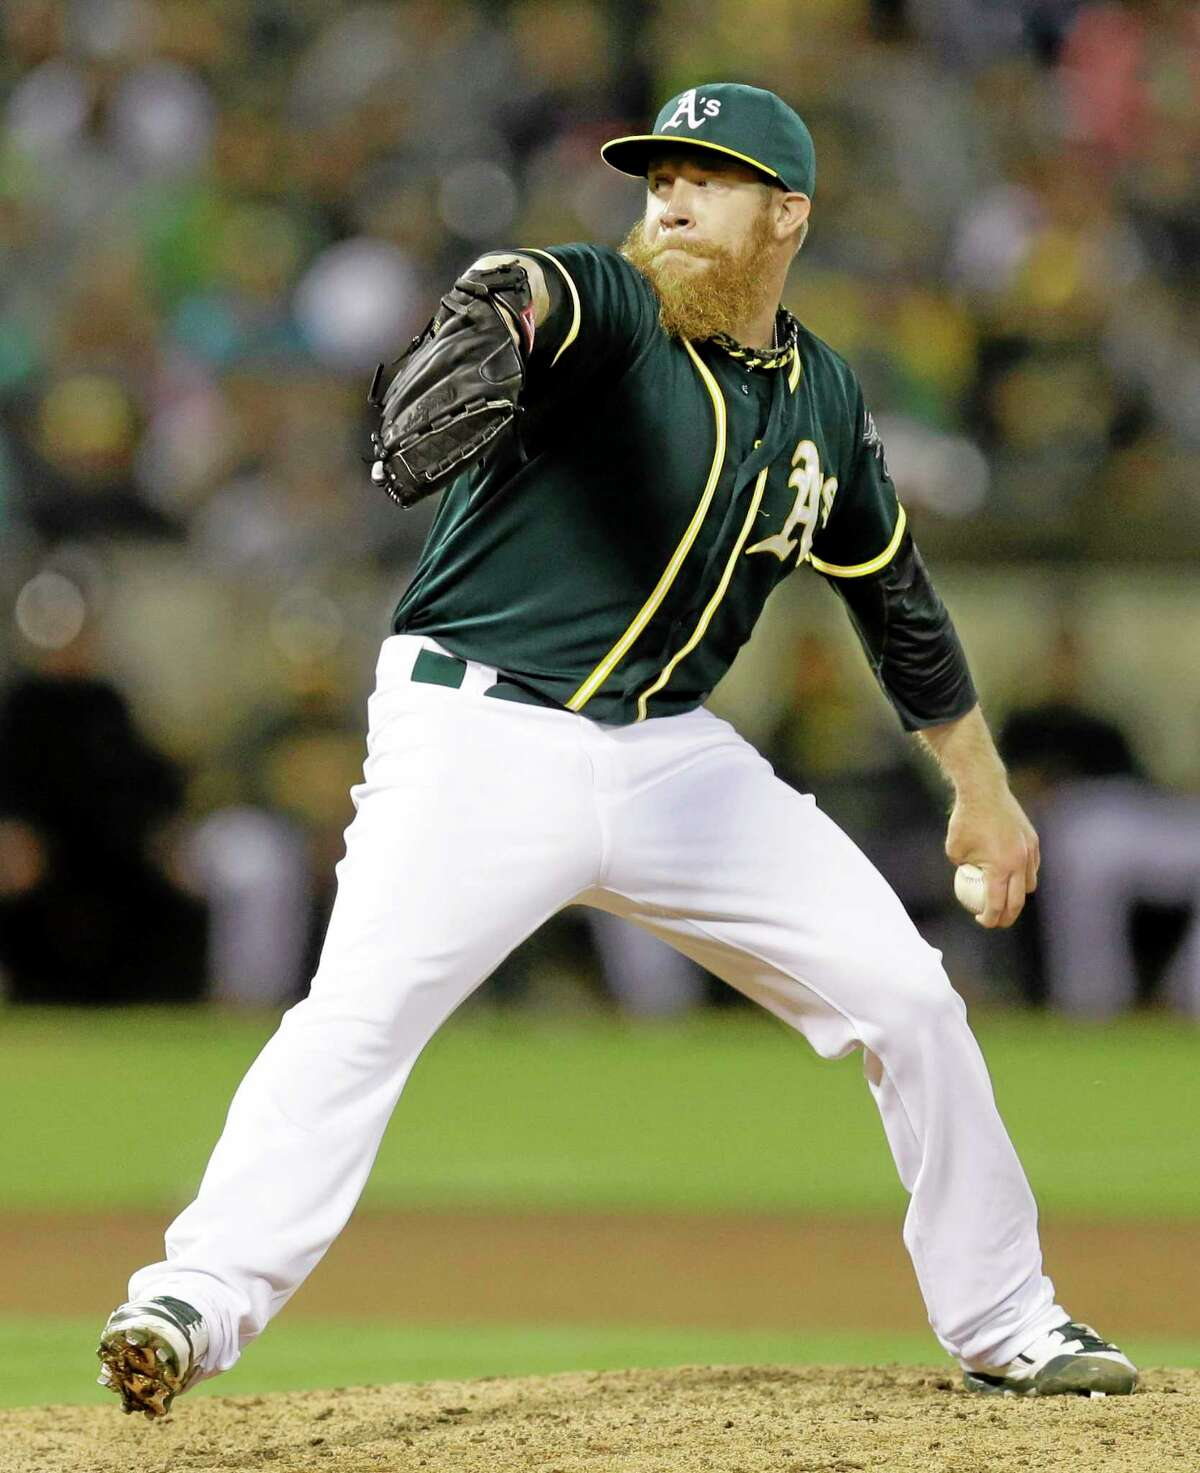 Oakland Athletics closer Sean Doolittle works against the New York Yankees in the ninth inning of a June 14 game in Oakland, Calif.